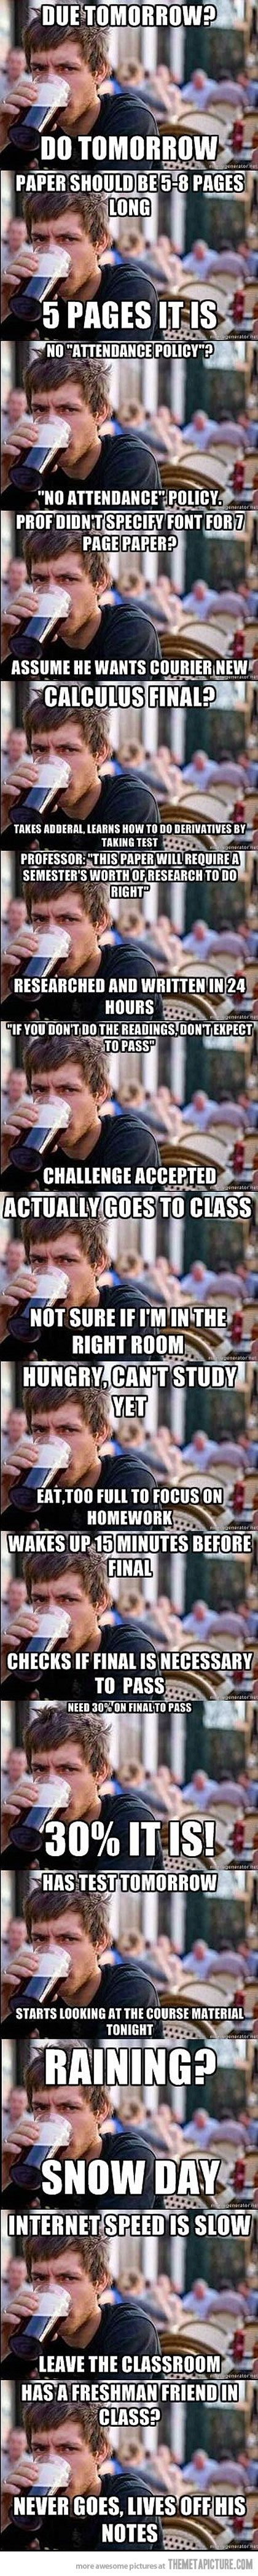 Twue: Colleges Life, Lazy Colleges, College Students, Senior Years, College Life, Even, Colleges Student, Colleges Senior, High Schools